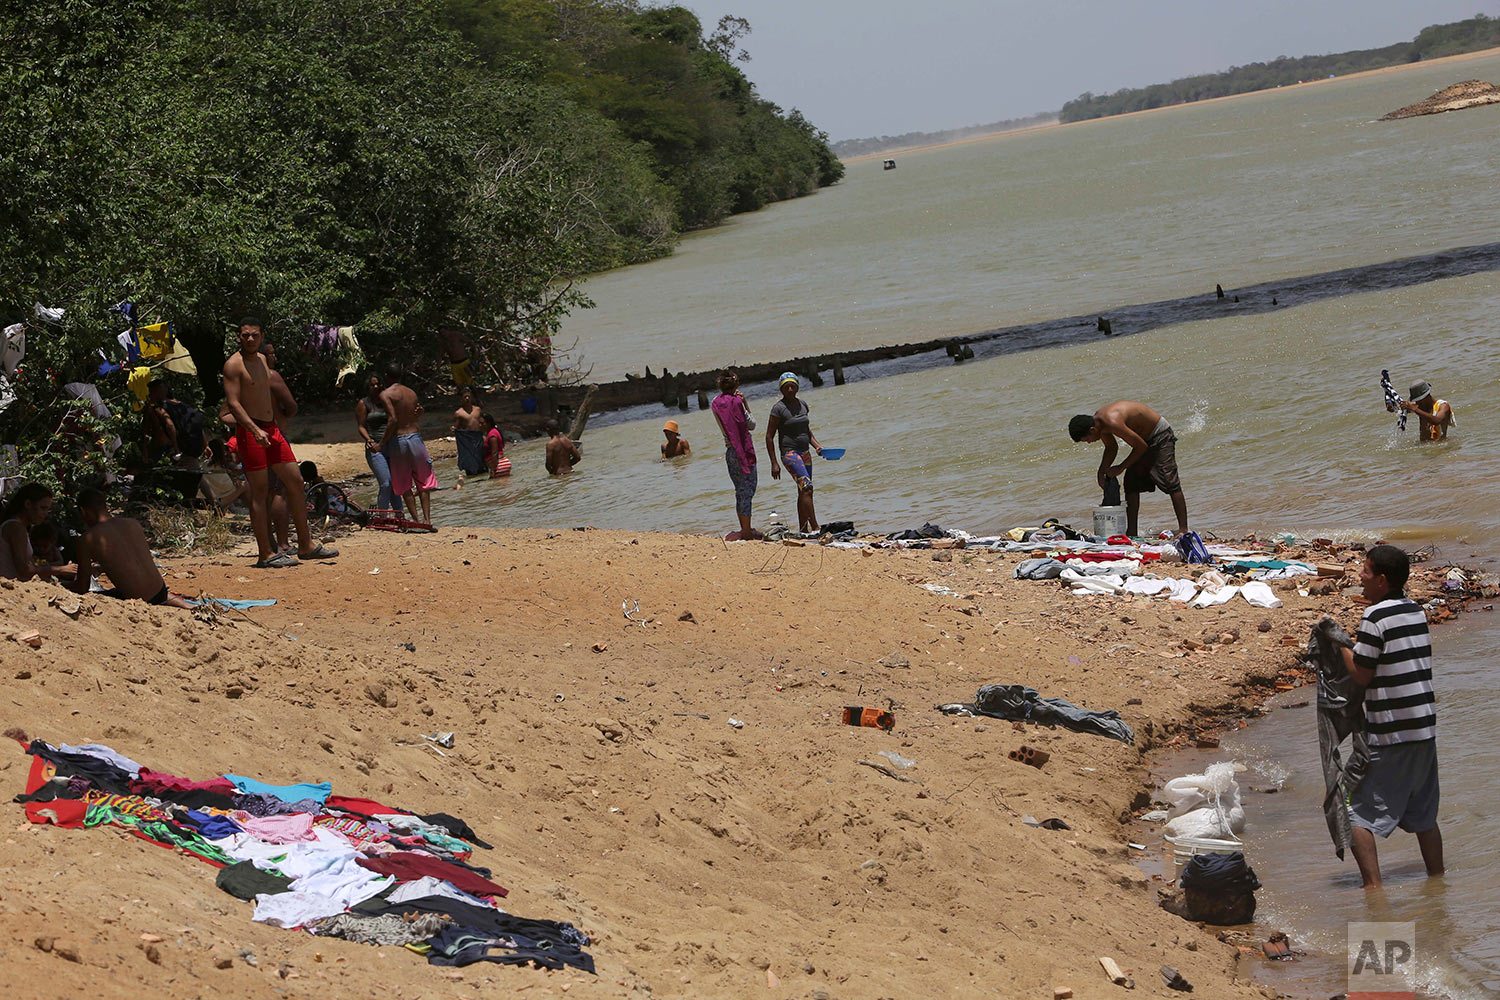 In this March 11, 2018 photo, Venezuelan migrants relax on the banks of the Branco River where they also wash clothes and bathe in Boa Vista, Roraima state, Brazil. (AP Photo/Eraldo Peres)